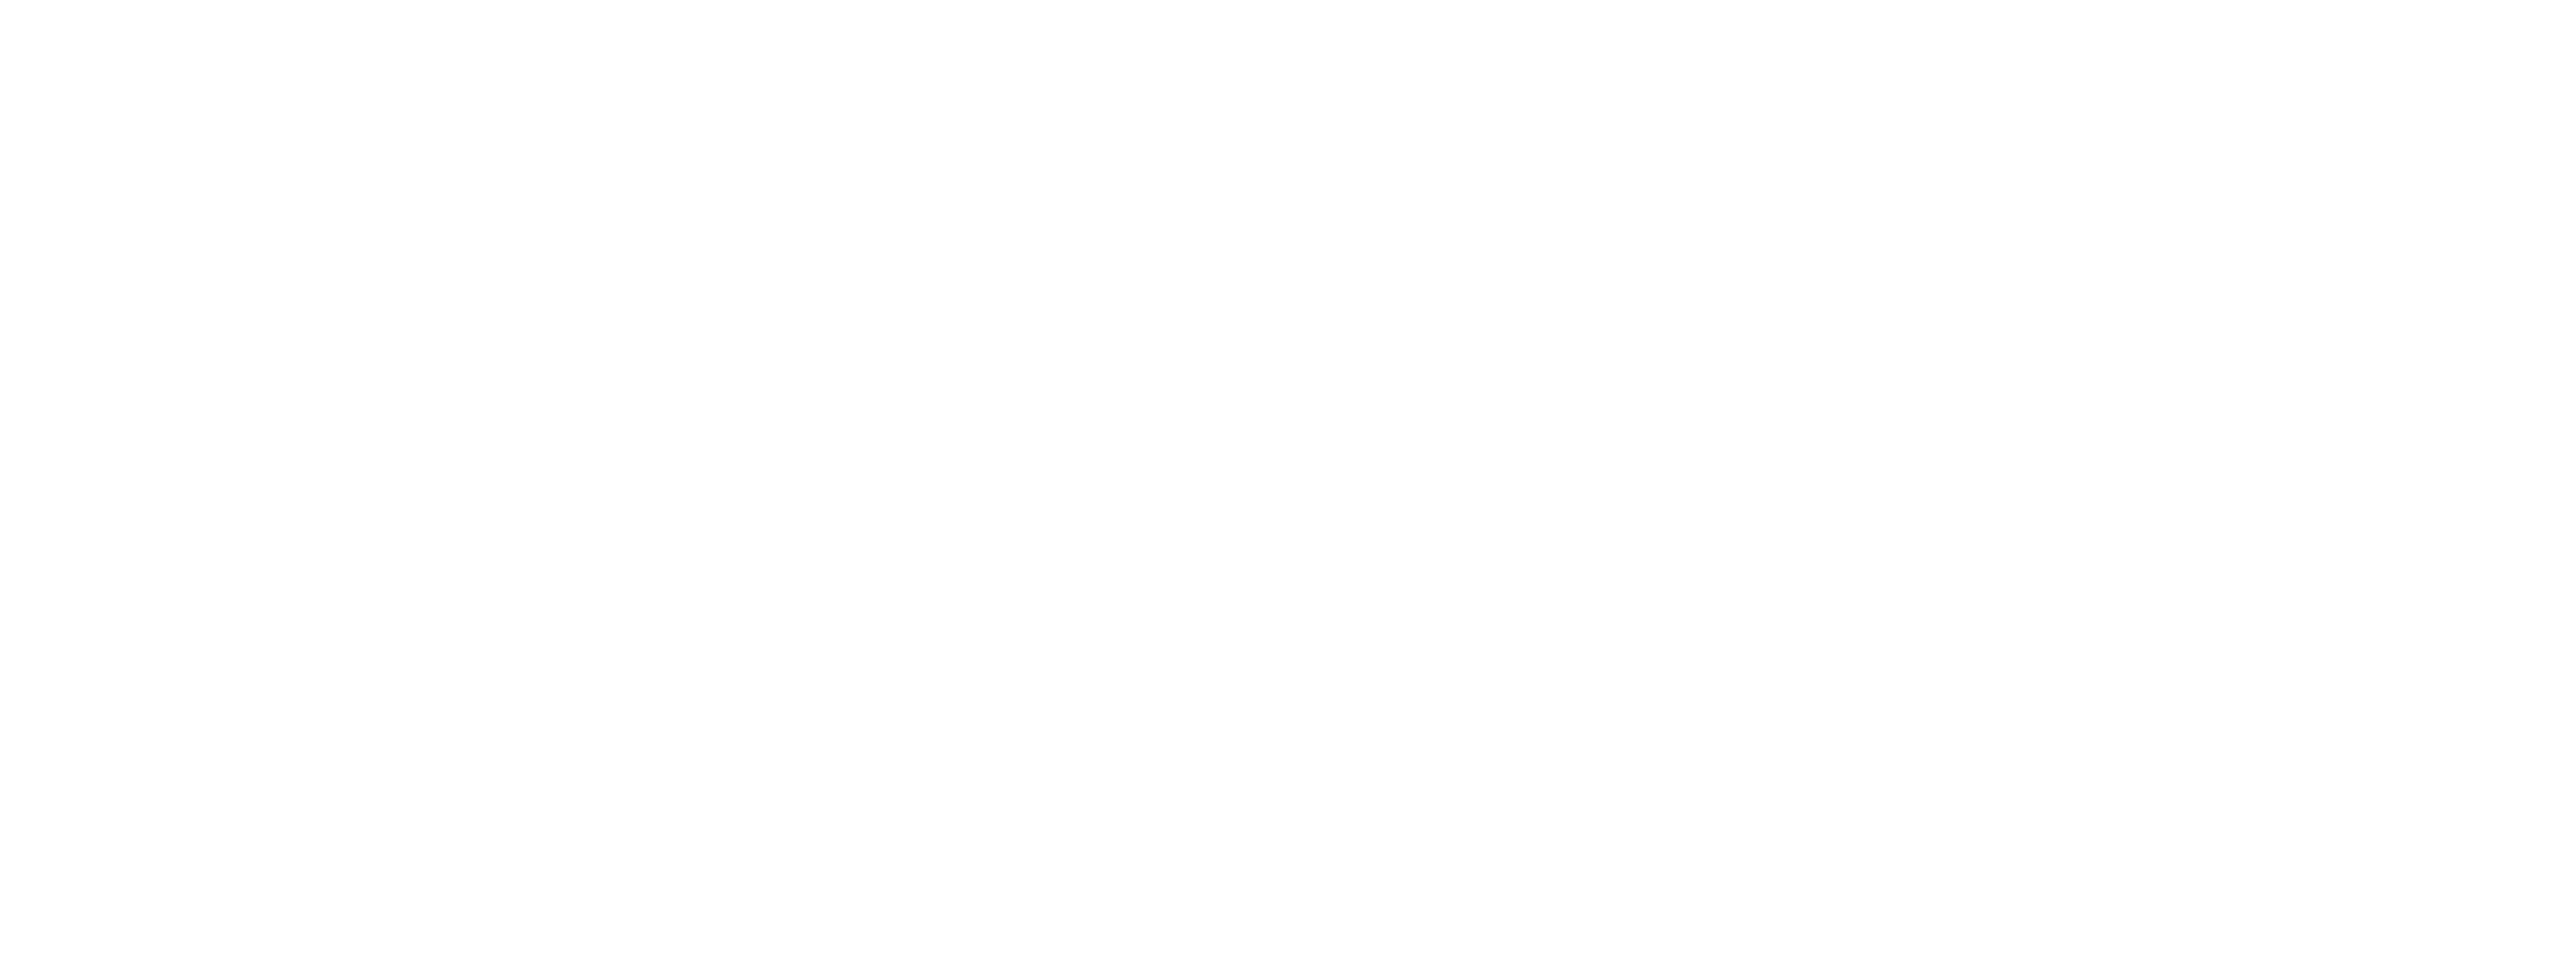 Trek Bicycle Kingston Home Page